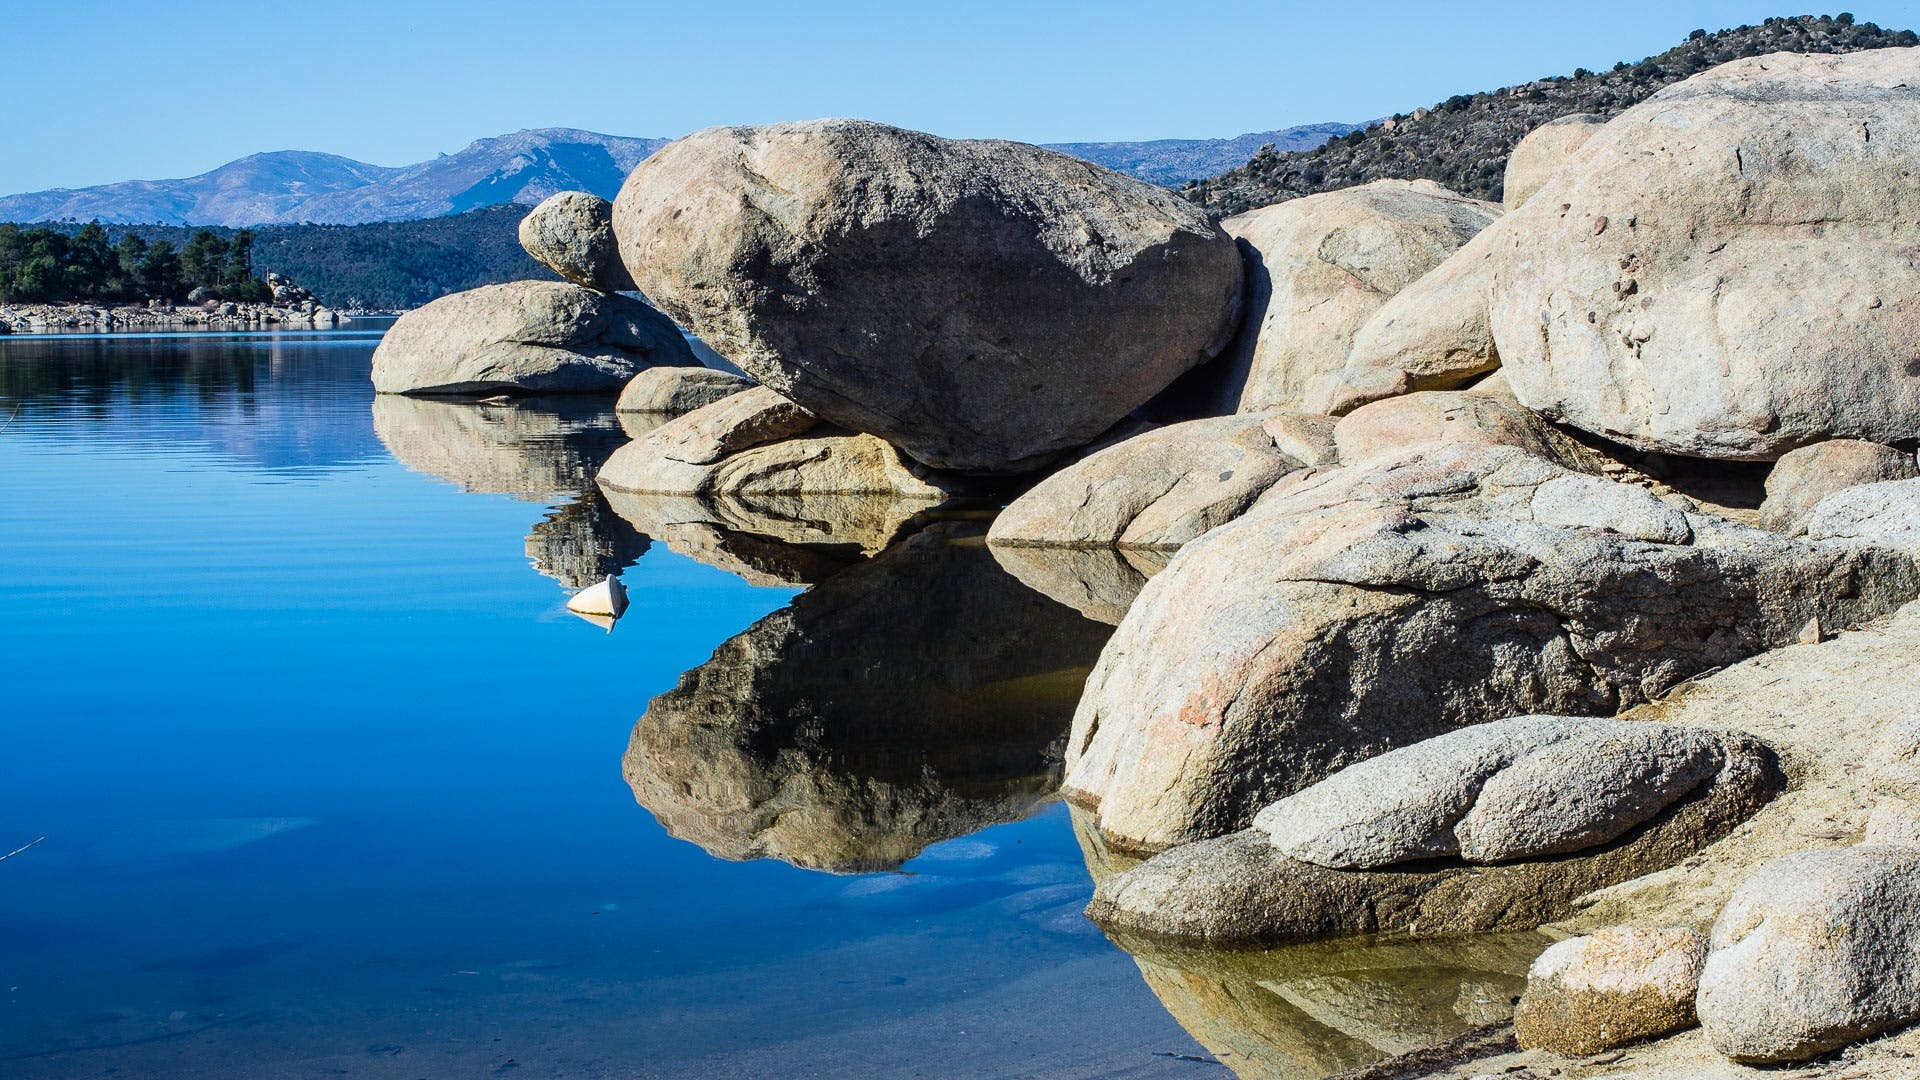 Gray Rock Formation Reflecting on Body of Water